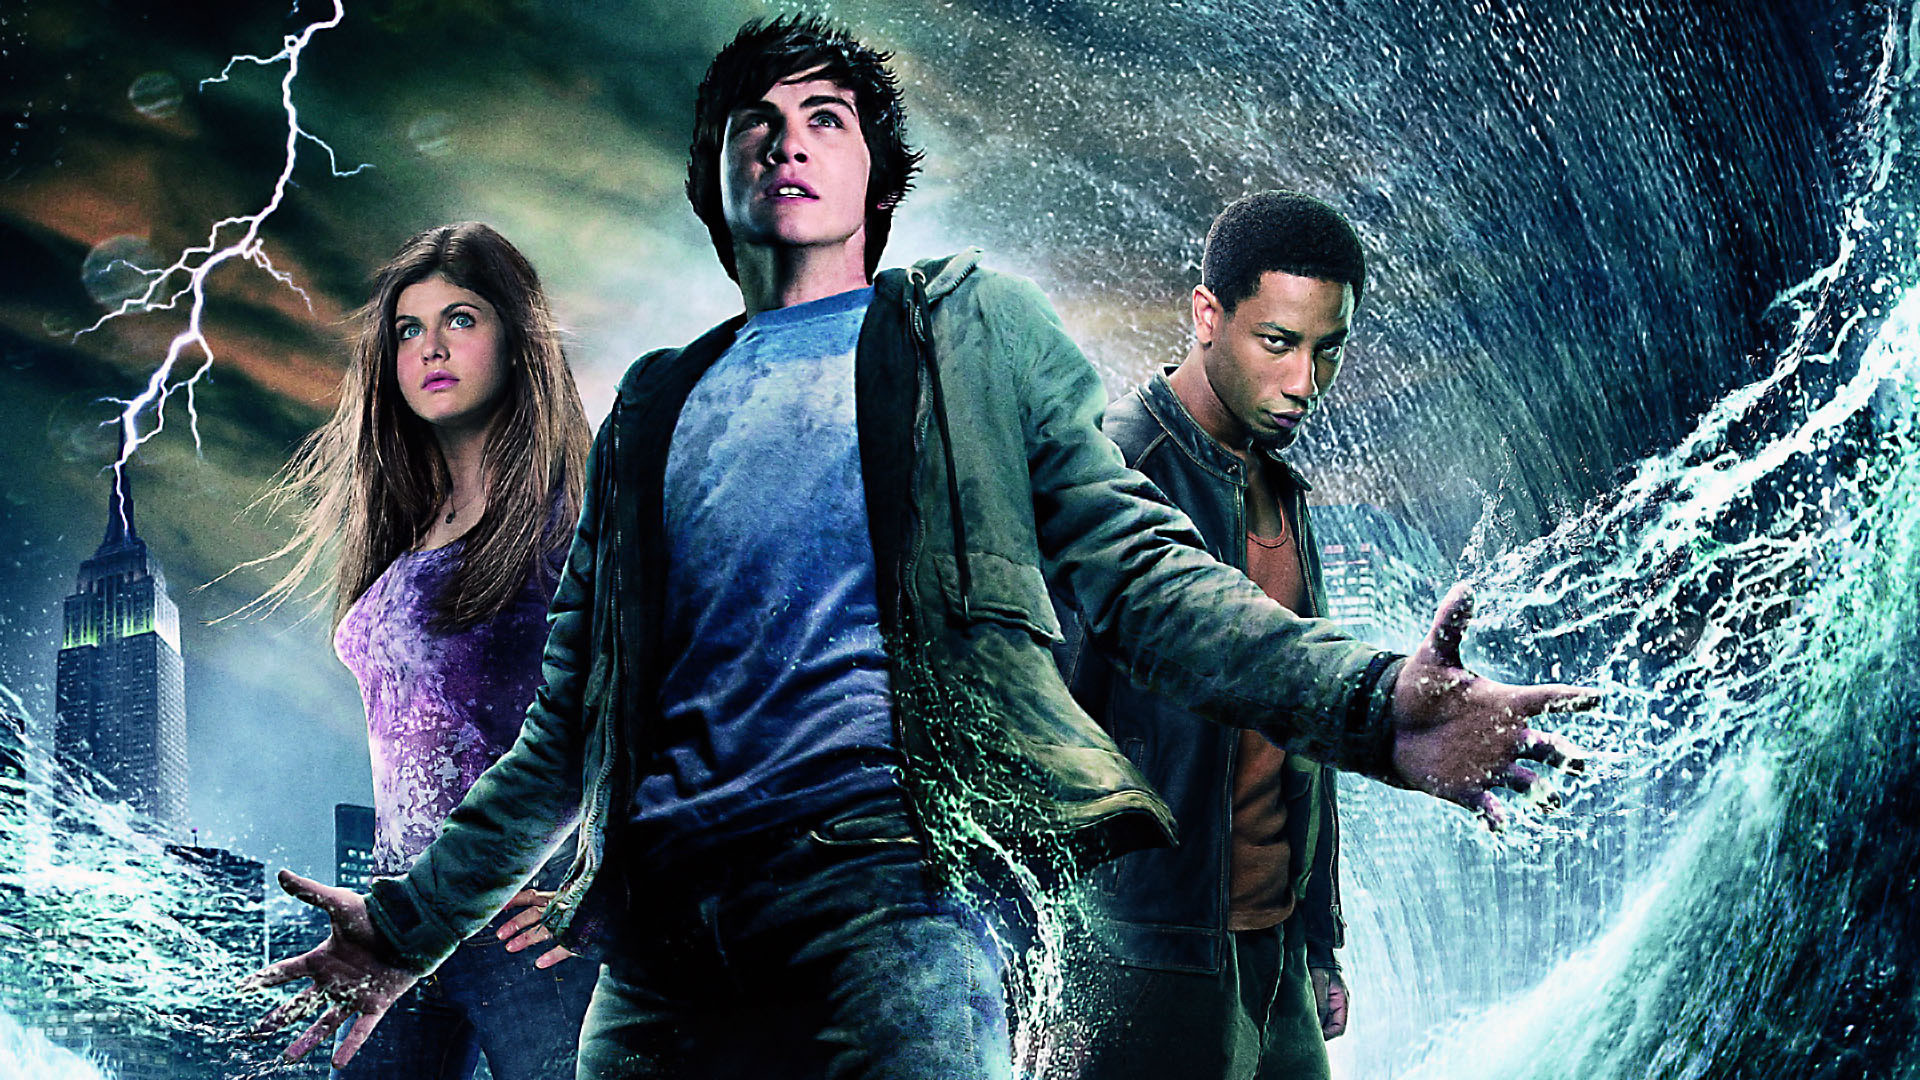 Series: Percy Jackson and the Olympians